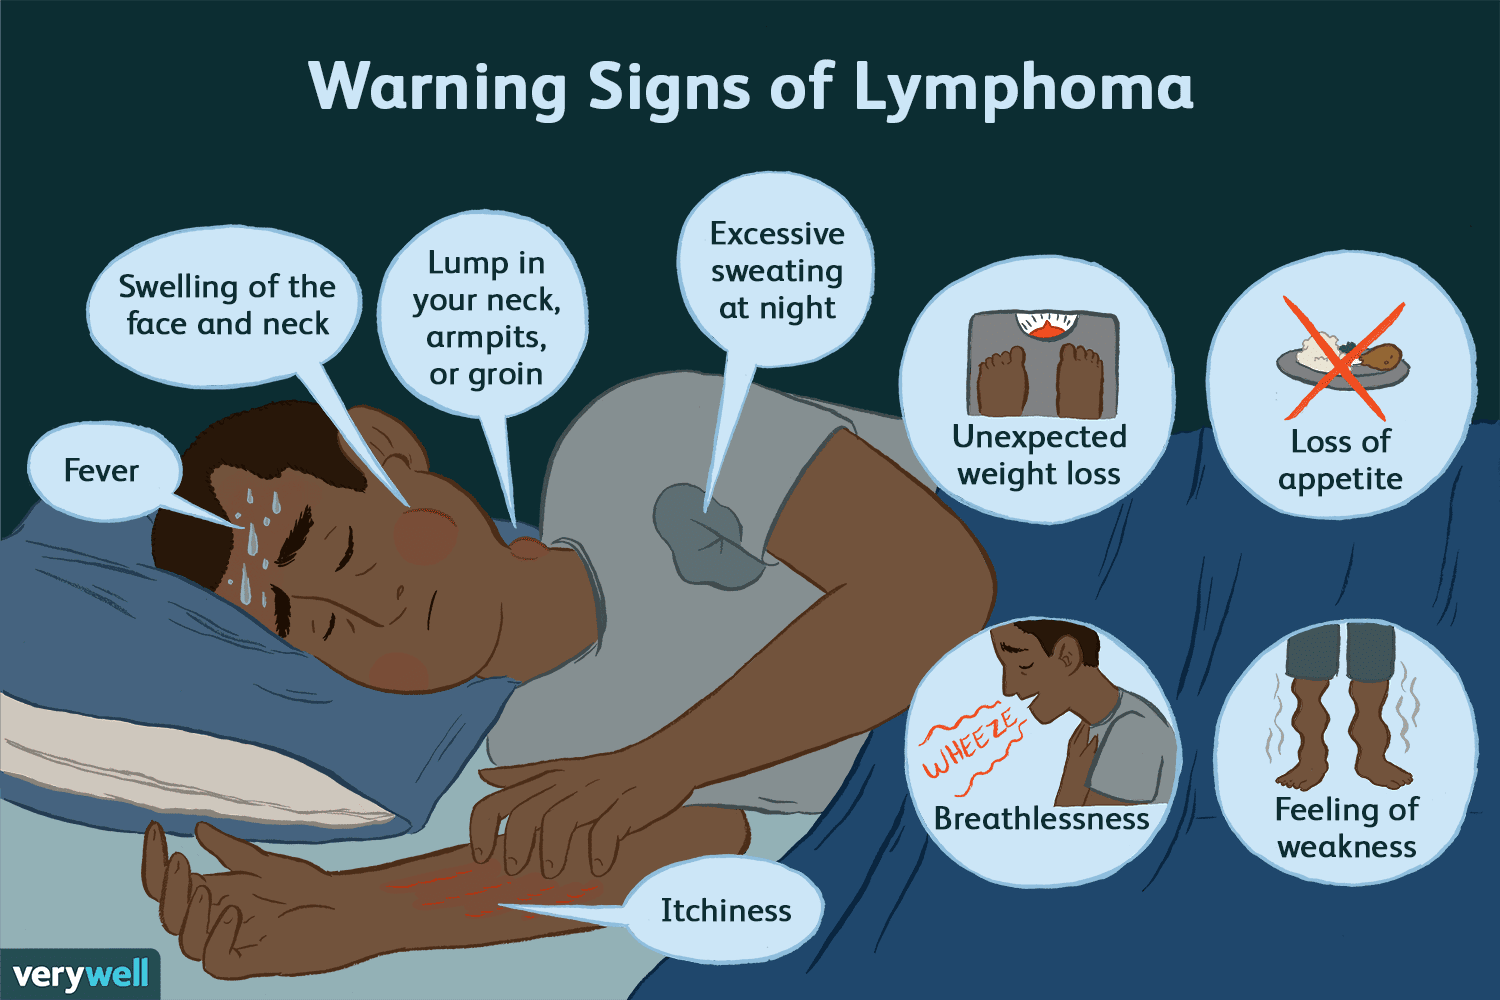 Could These Be Warning Signs of Lymphoma?